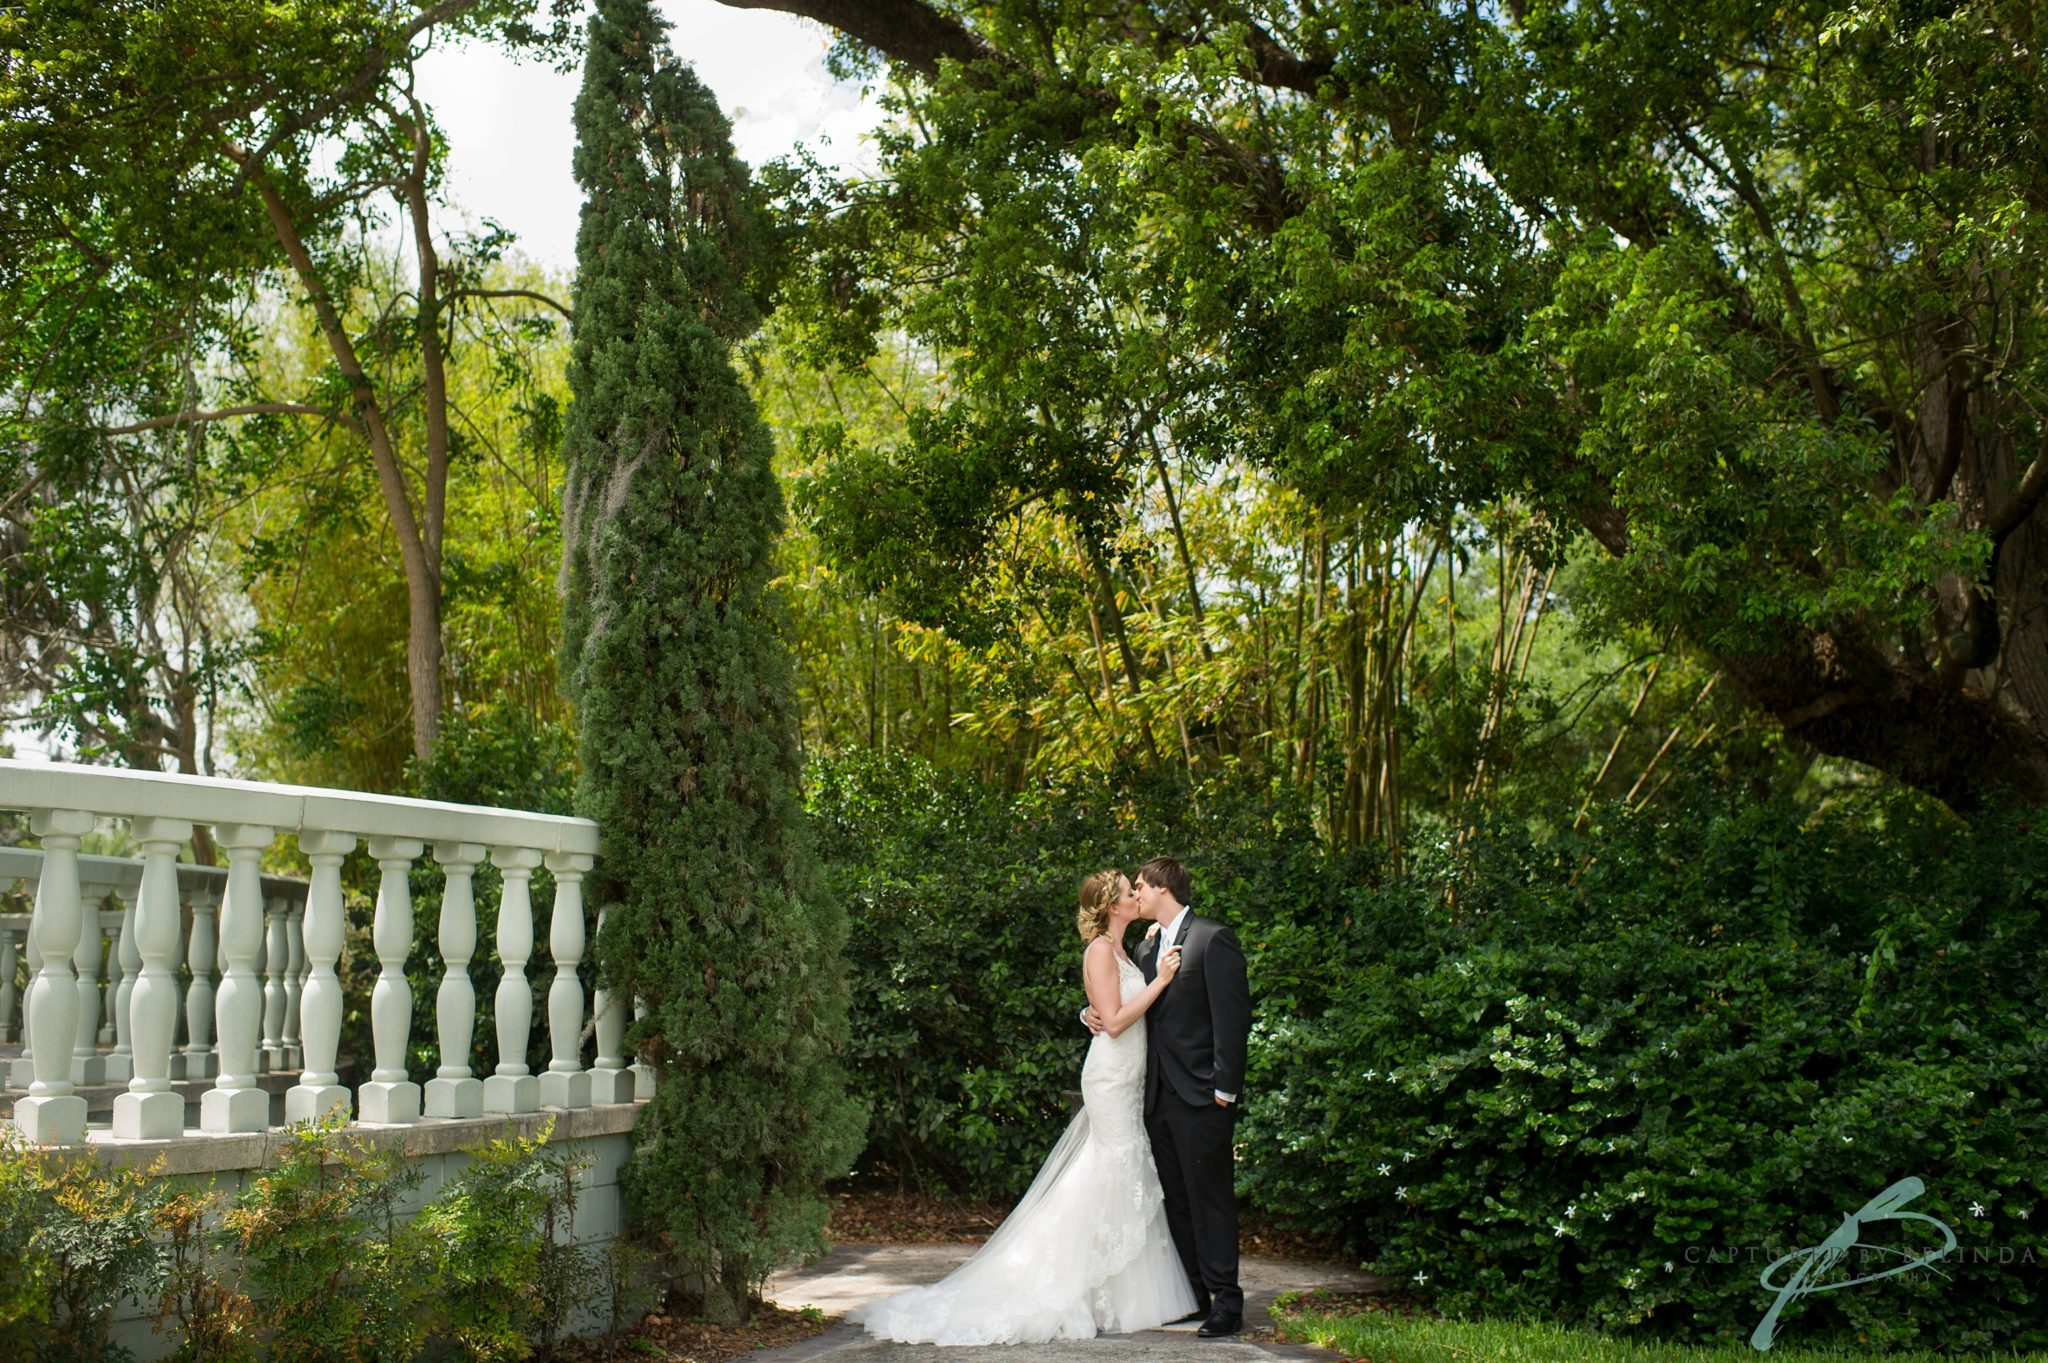 13 Best Images About Leu Gardens Weddings On Pinterest: Leu Gardens Wedding